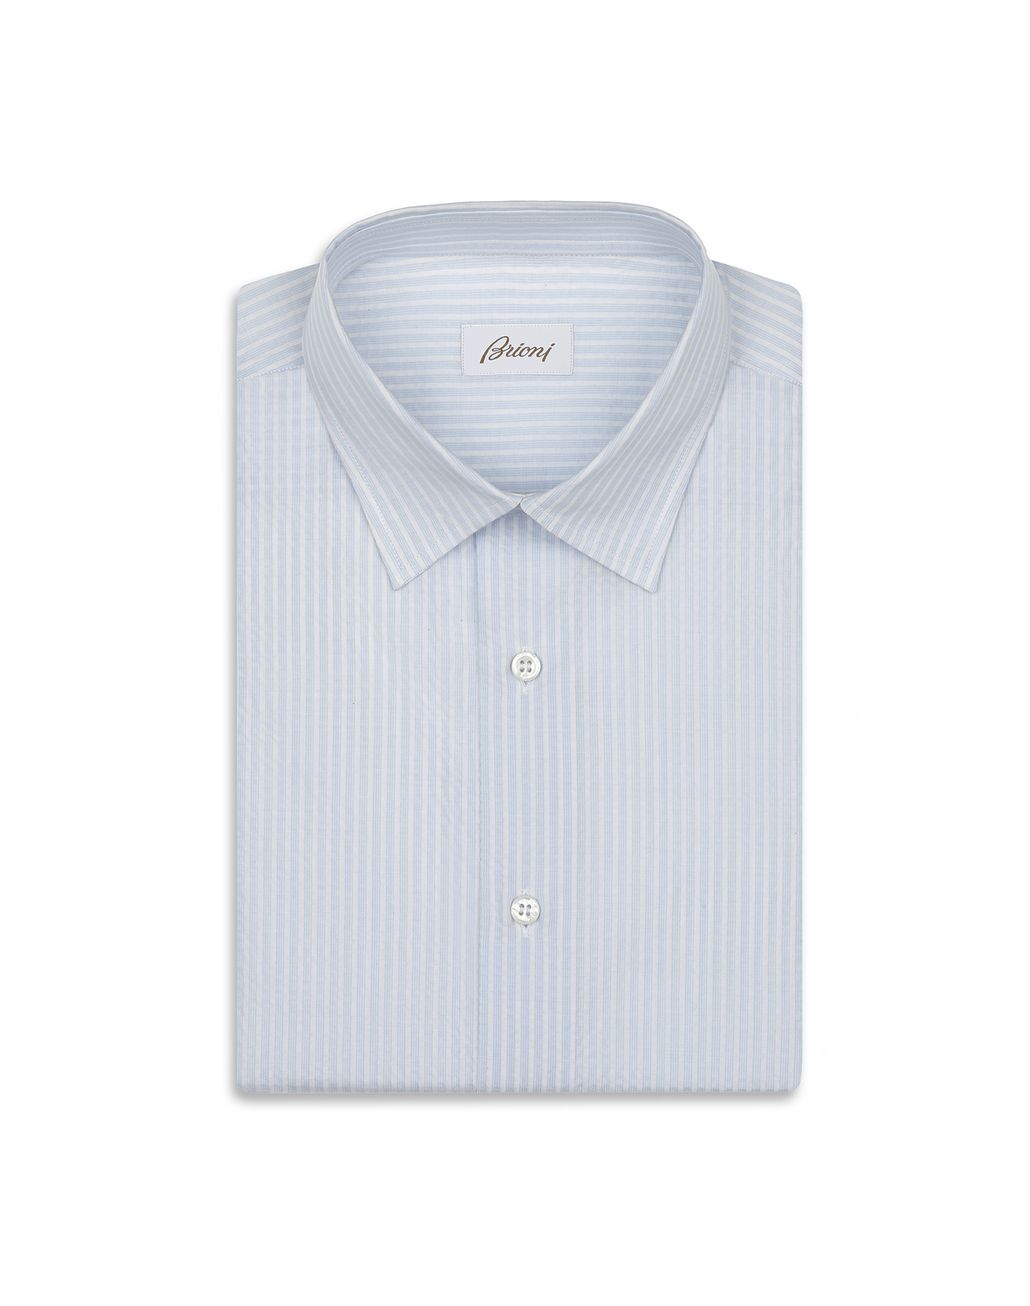 BRIONI Light Blue and White Seersucker Shirt Leisure shirt Man f